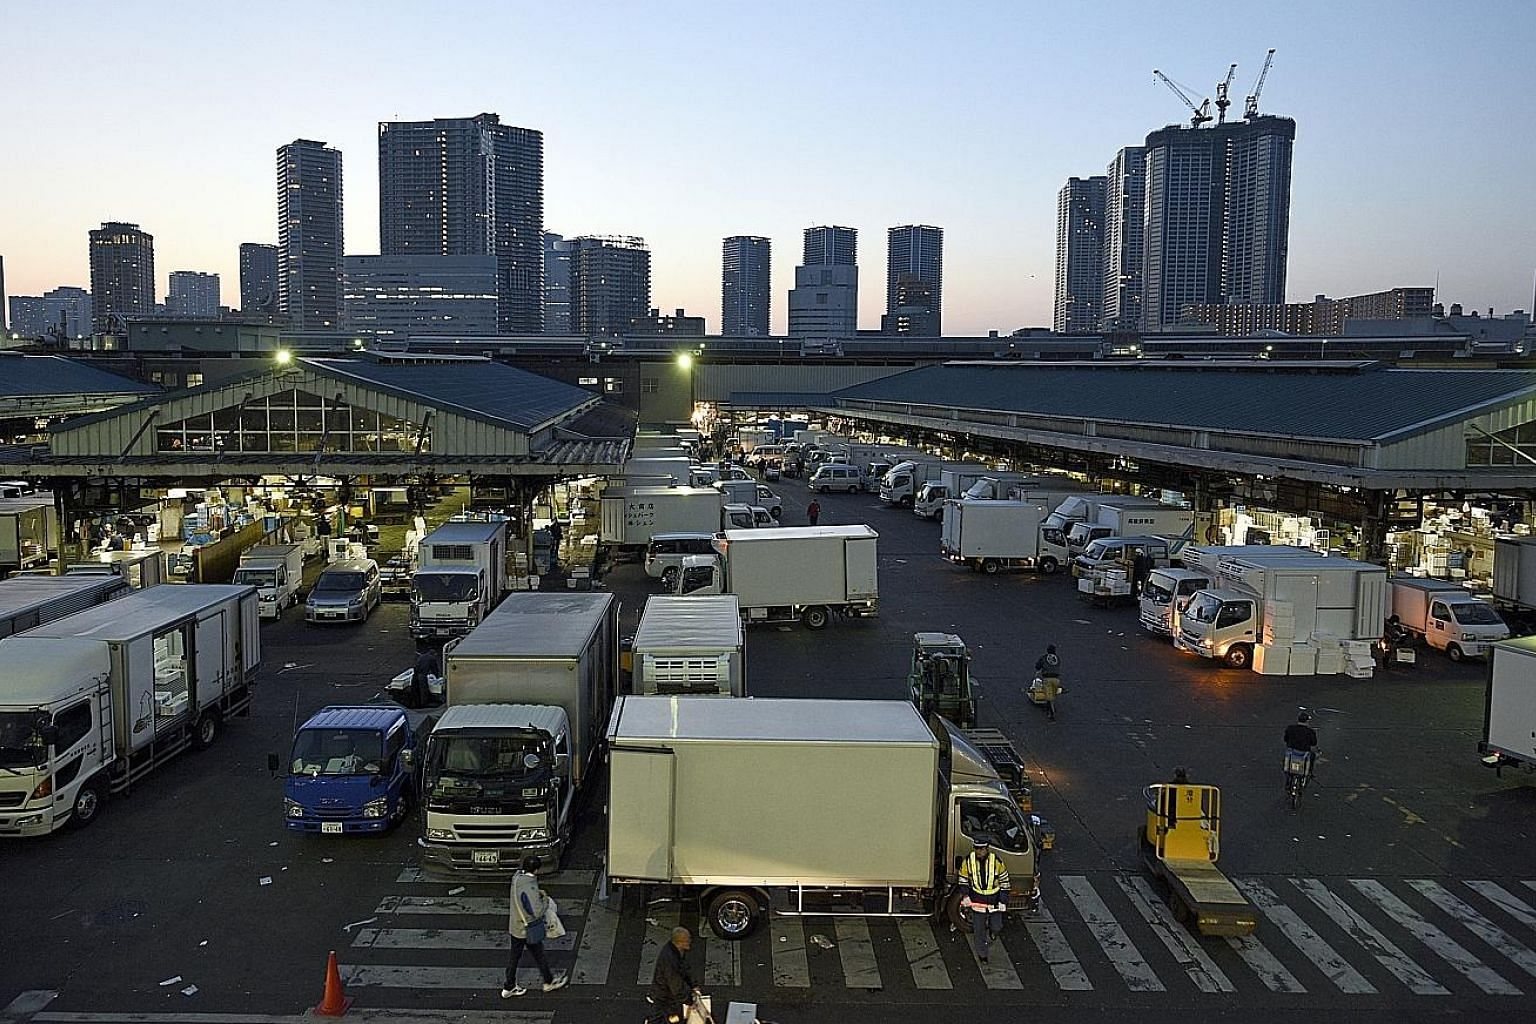 Above: High levels of toxic chemicals found in groundwater tests at the spanking-new Toyosu facility have frozen for now Tsukiji's move there. Right: Besides merchants and wholesalers, the fish auction at Tsukiji also draws crowds of tourists. Tsukij